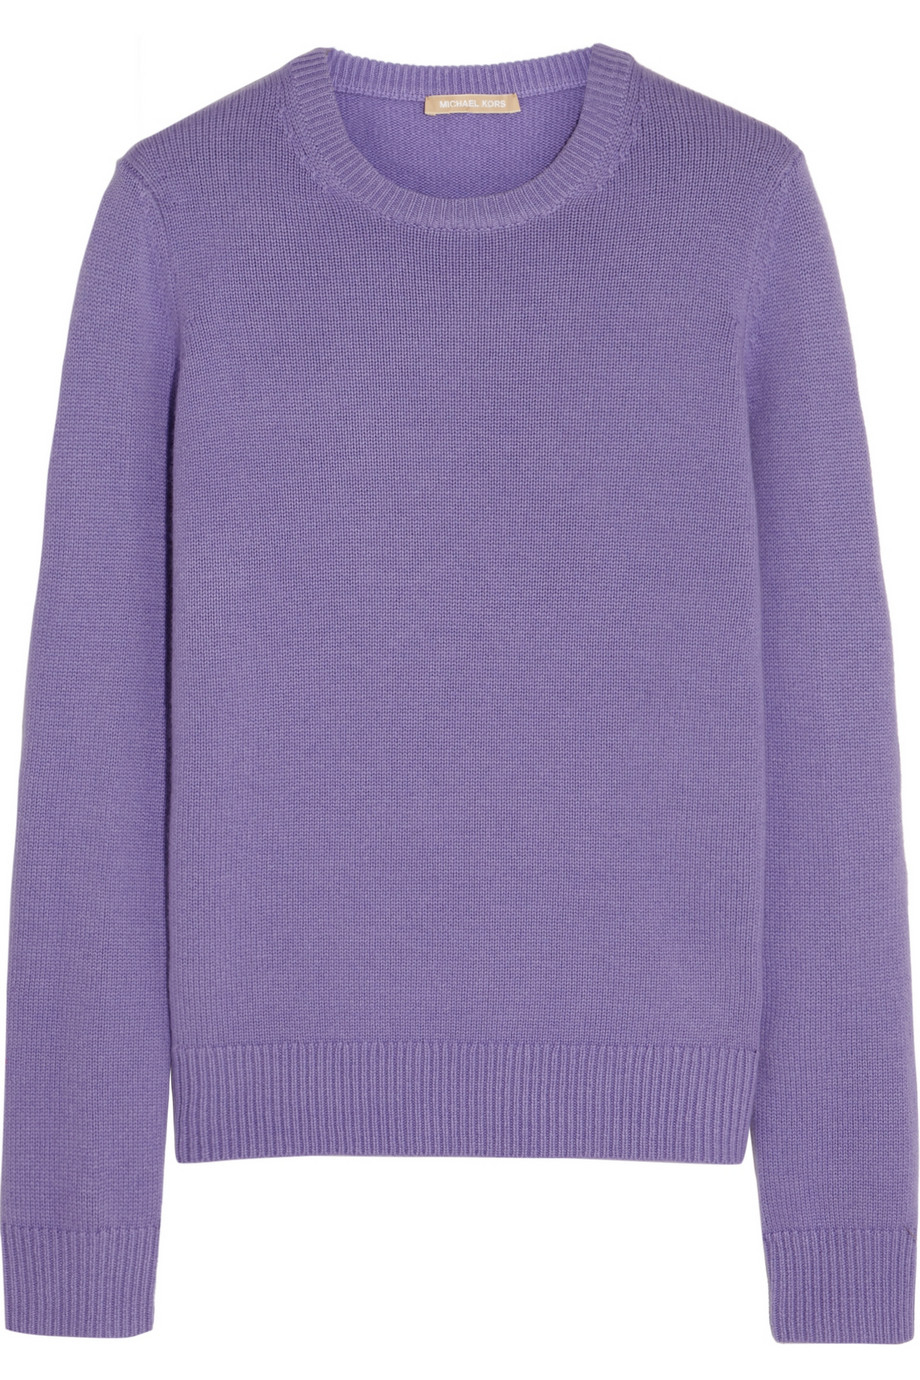 Michael kors Cashmere Sweater in Purple | Lyst